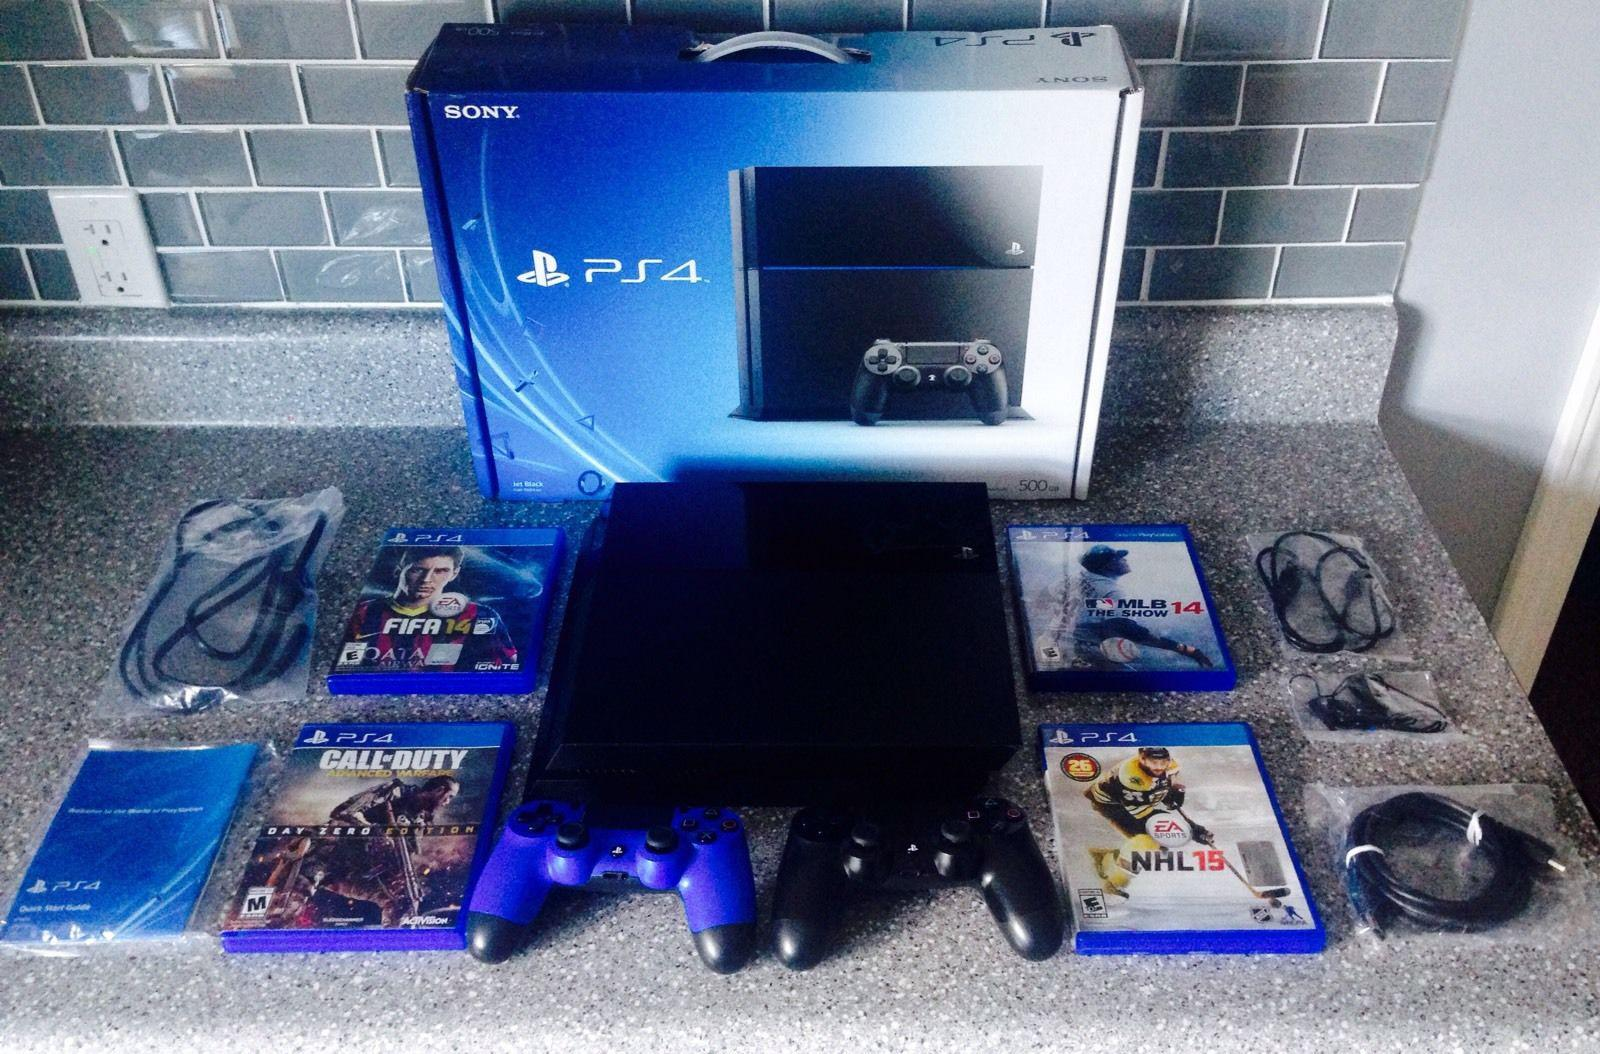 sony ps4 console. for sale sony ps4 console with 4 extra free games $200 ps4